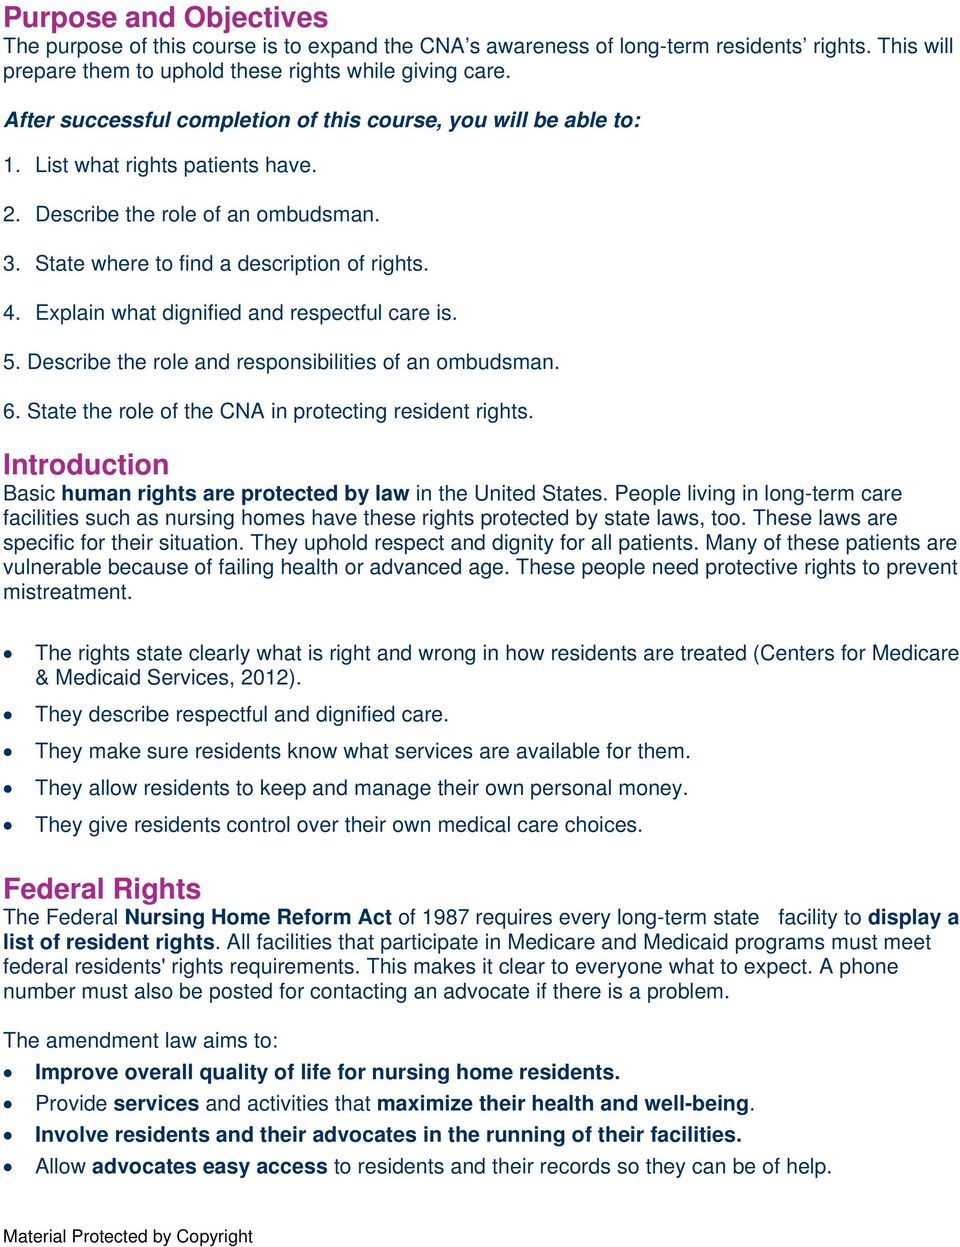 resident rights for florida cnas - pdf